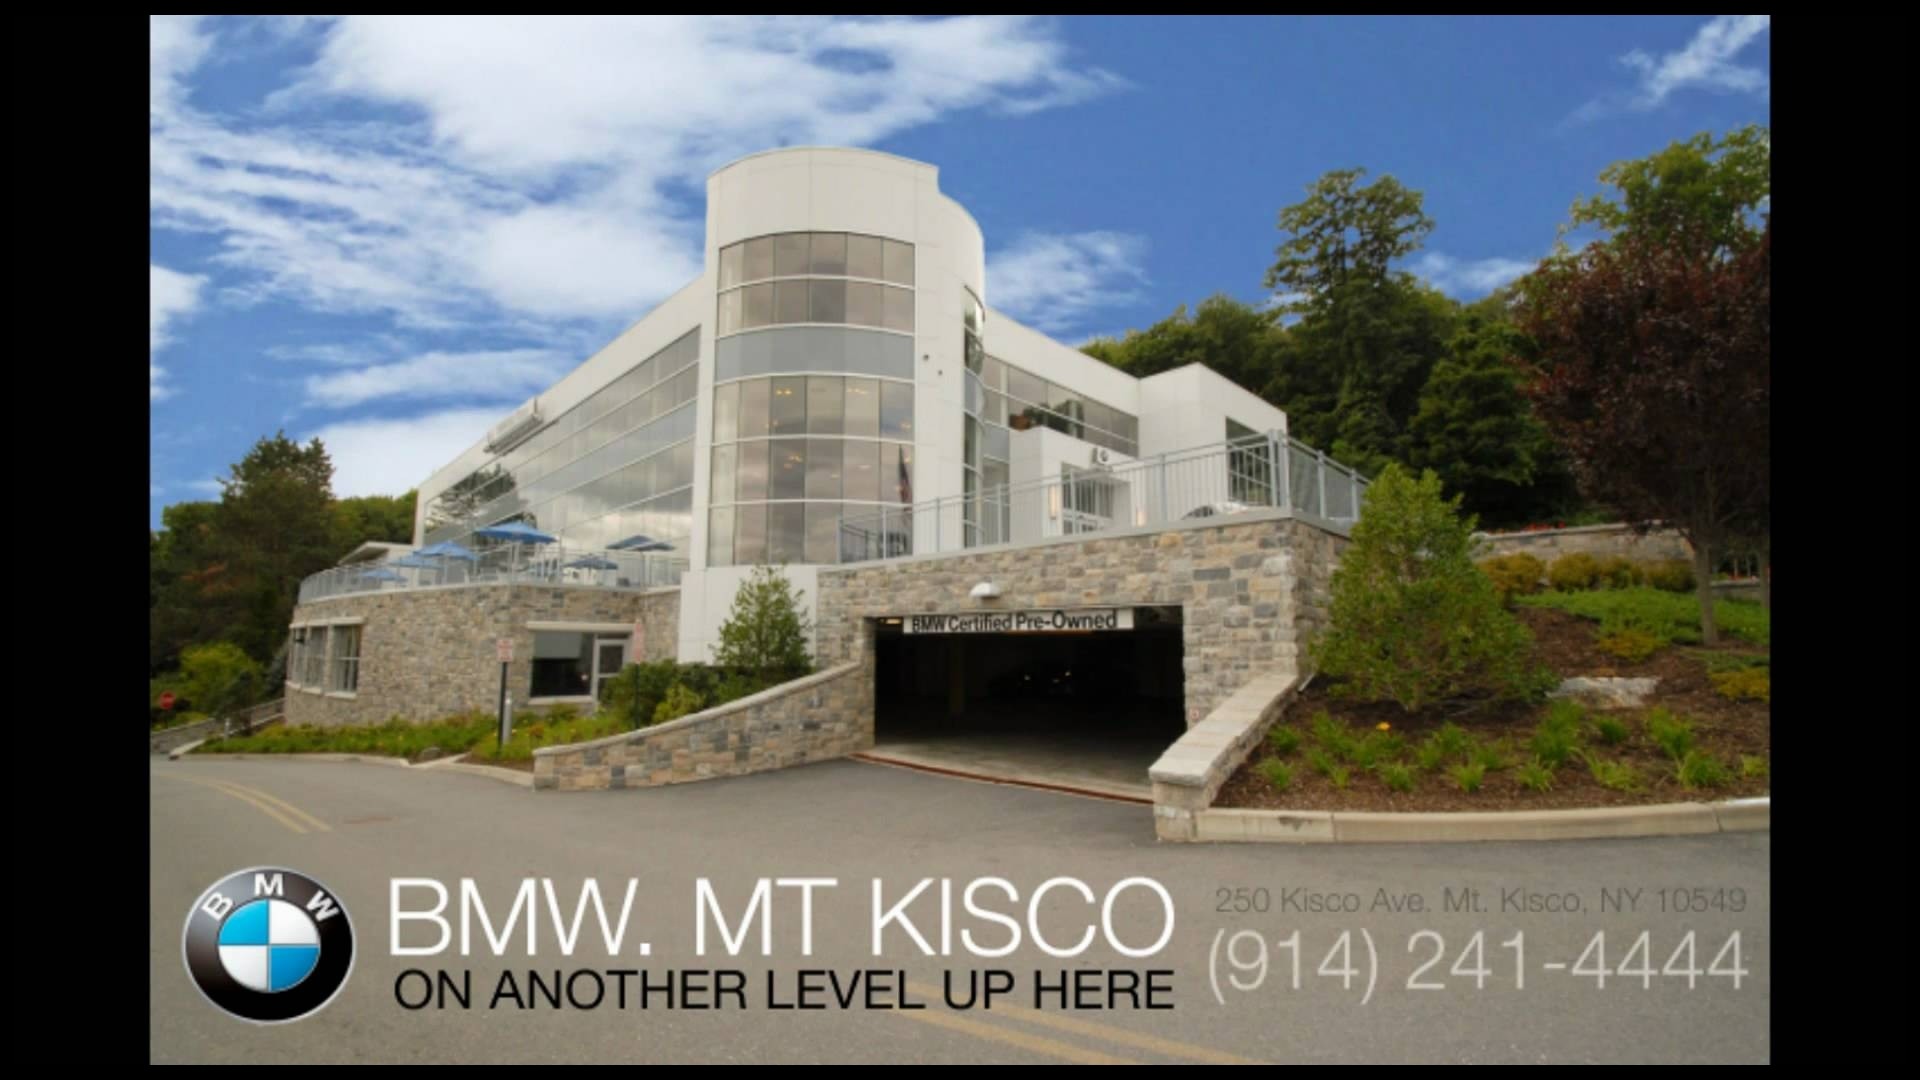 Service Up At BMW Mount Kisco Raising the Standard